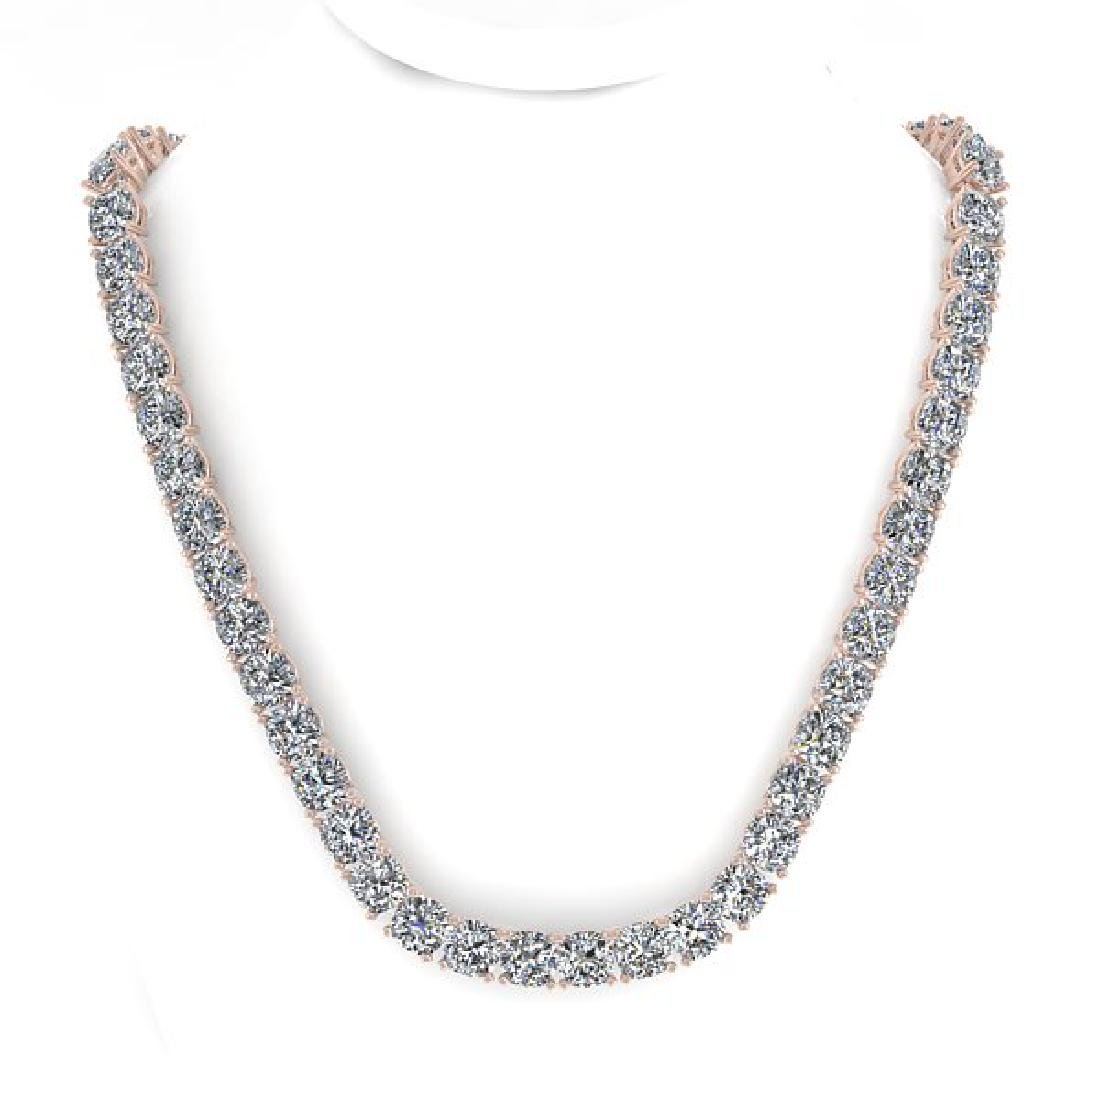 35 CTW Cushion Cut Certified SI Diamond Necklace 18K - 3